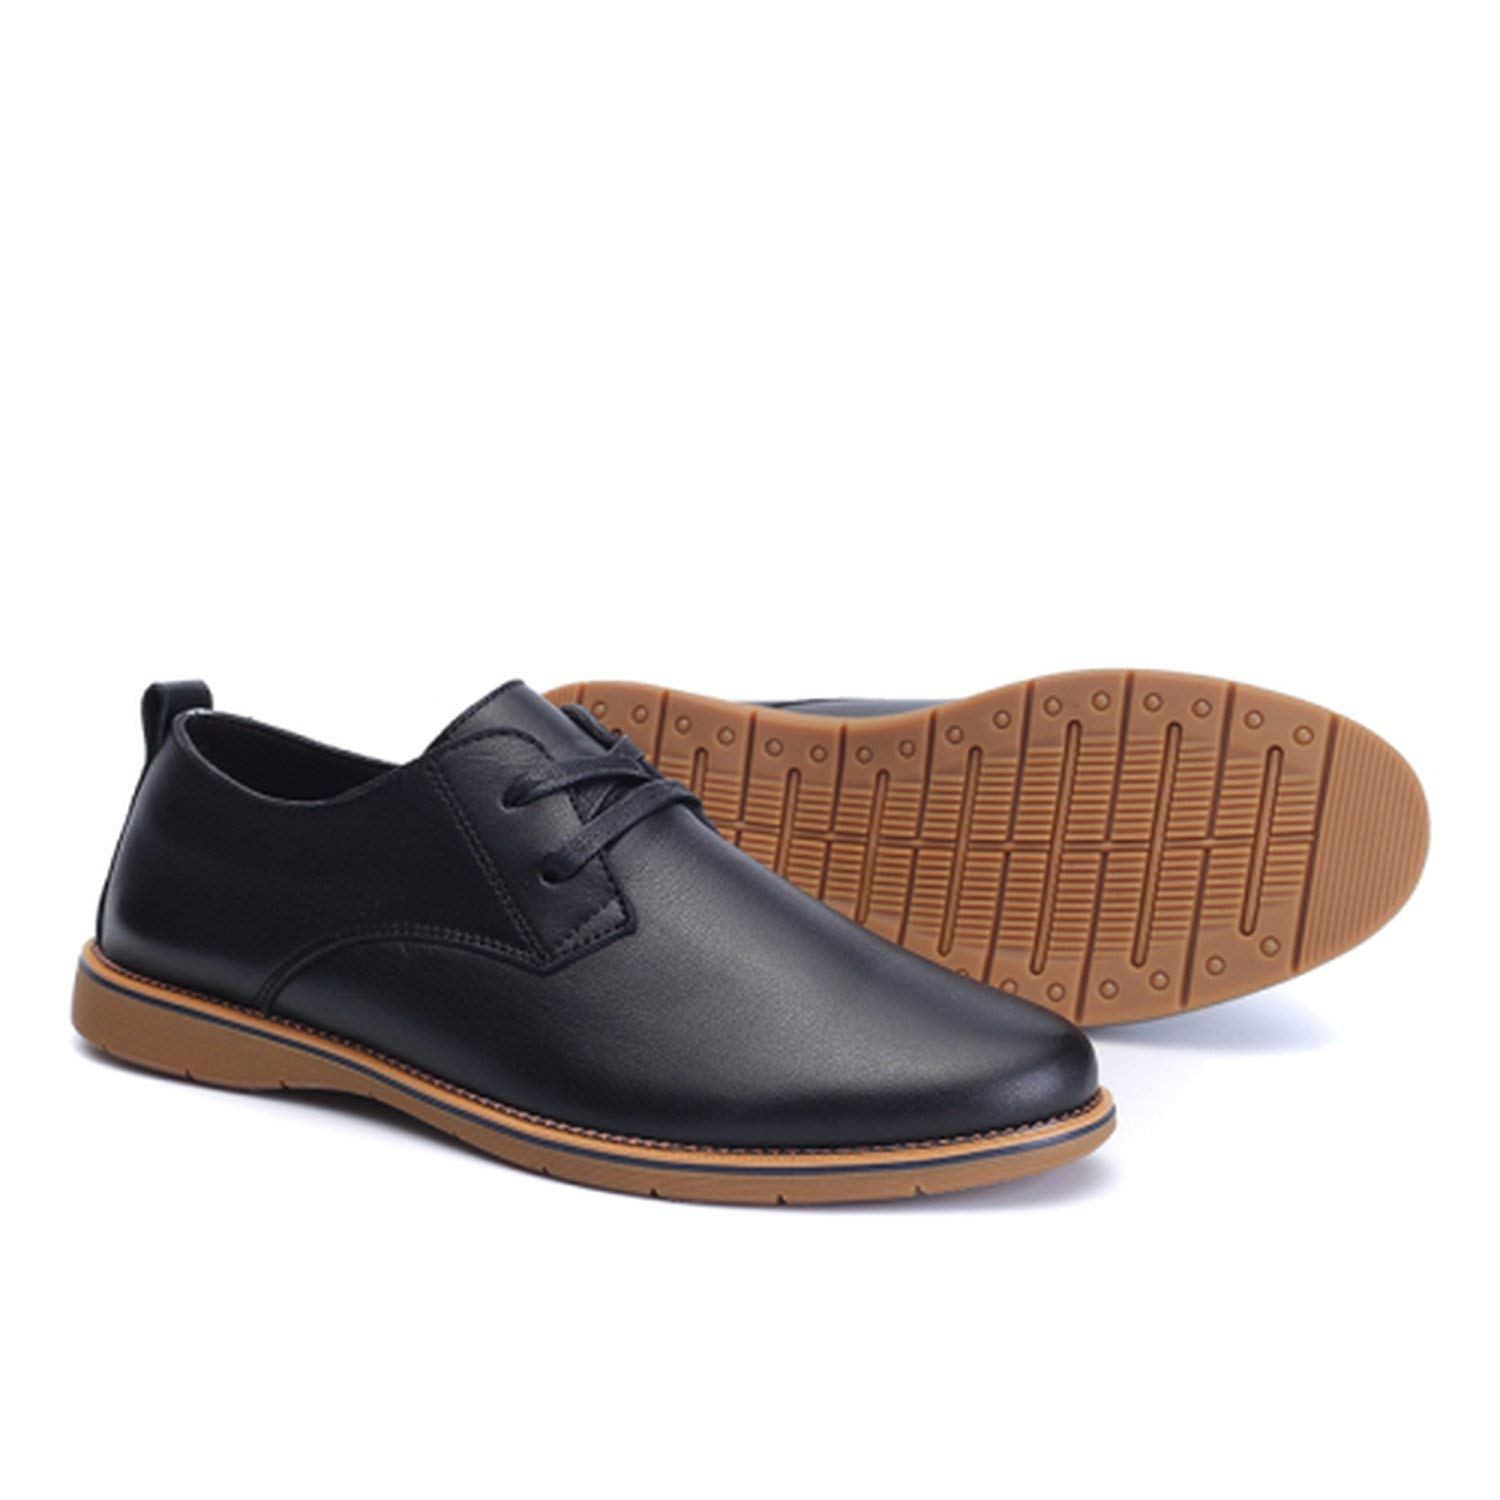 Memoriesed Men Casual Leather Shoes Winter Shoes Size 37-44 Warm Plush Lining Solid Color Man,Black,8